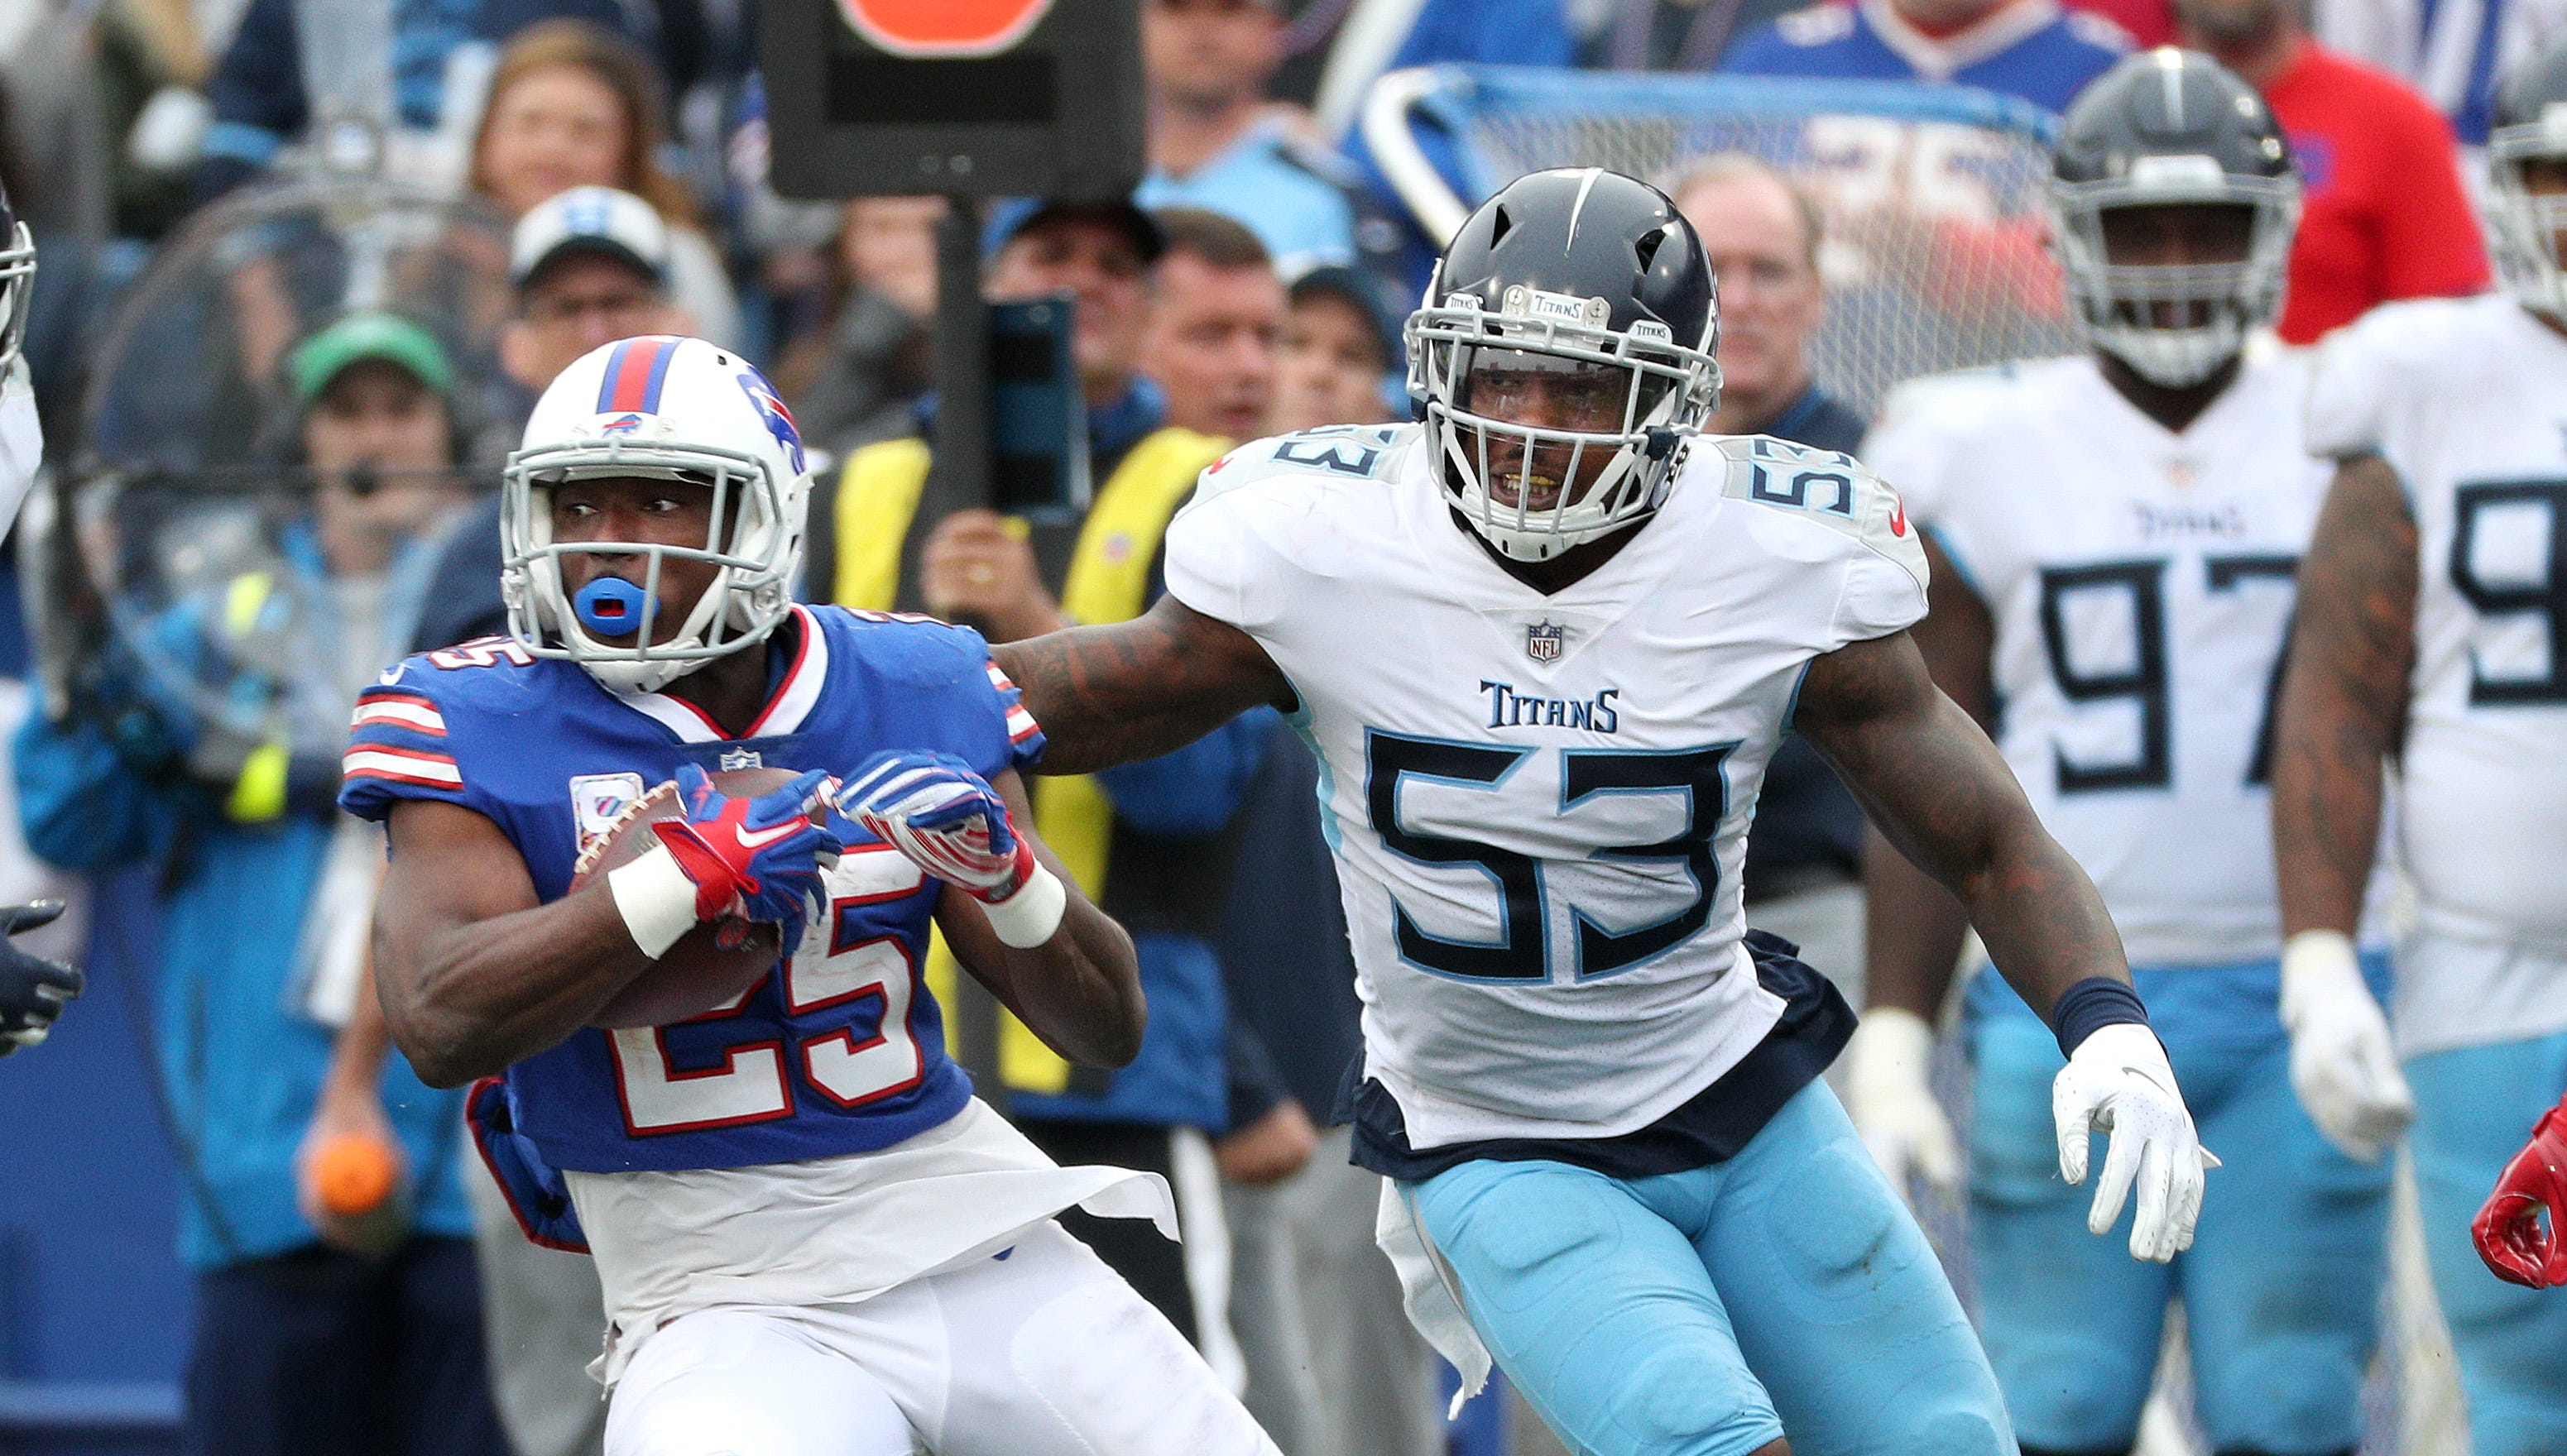 McCoy has been a gift that keeps giving for the Bills but it's time to trade the veteran running back for picks, players to keep rebuilding job going